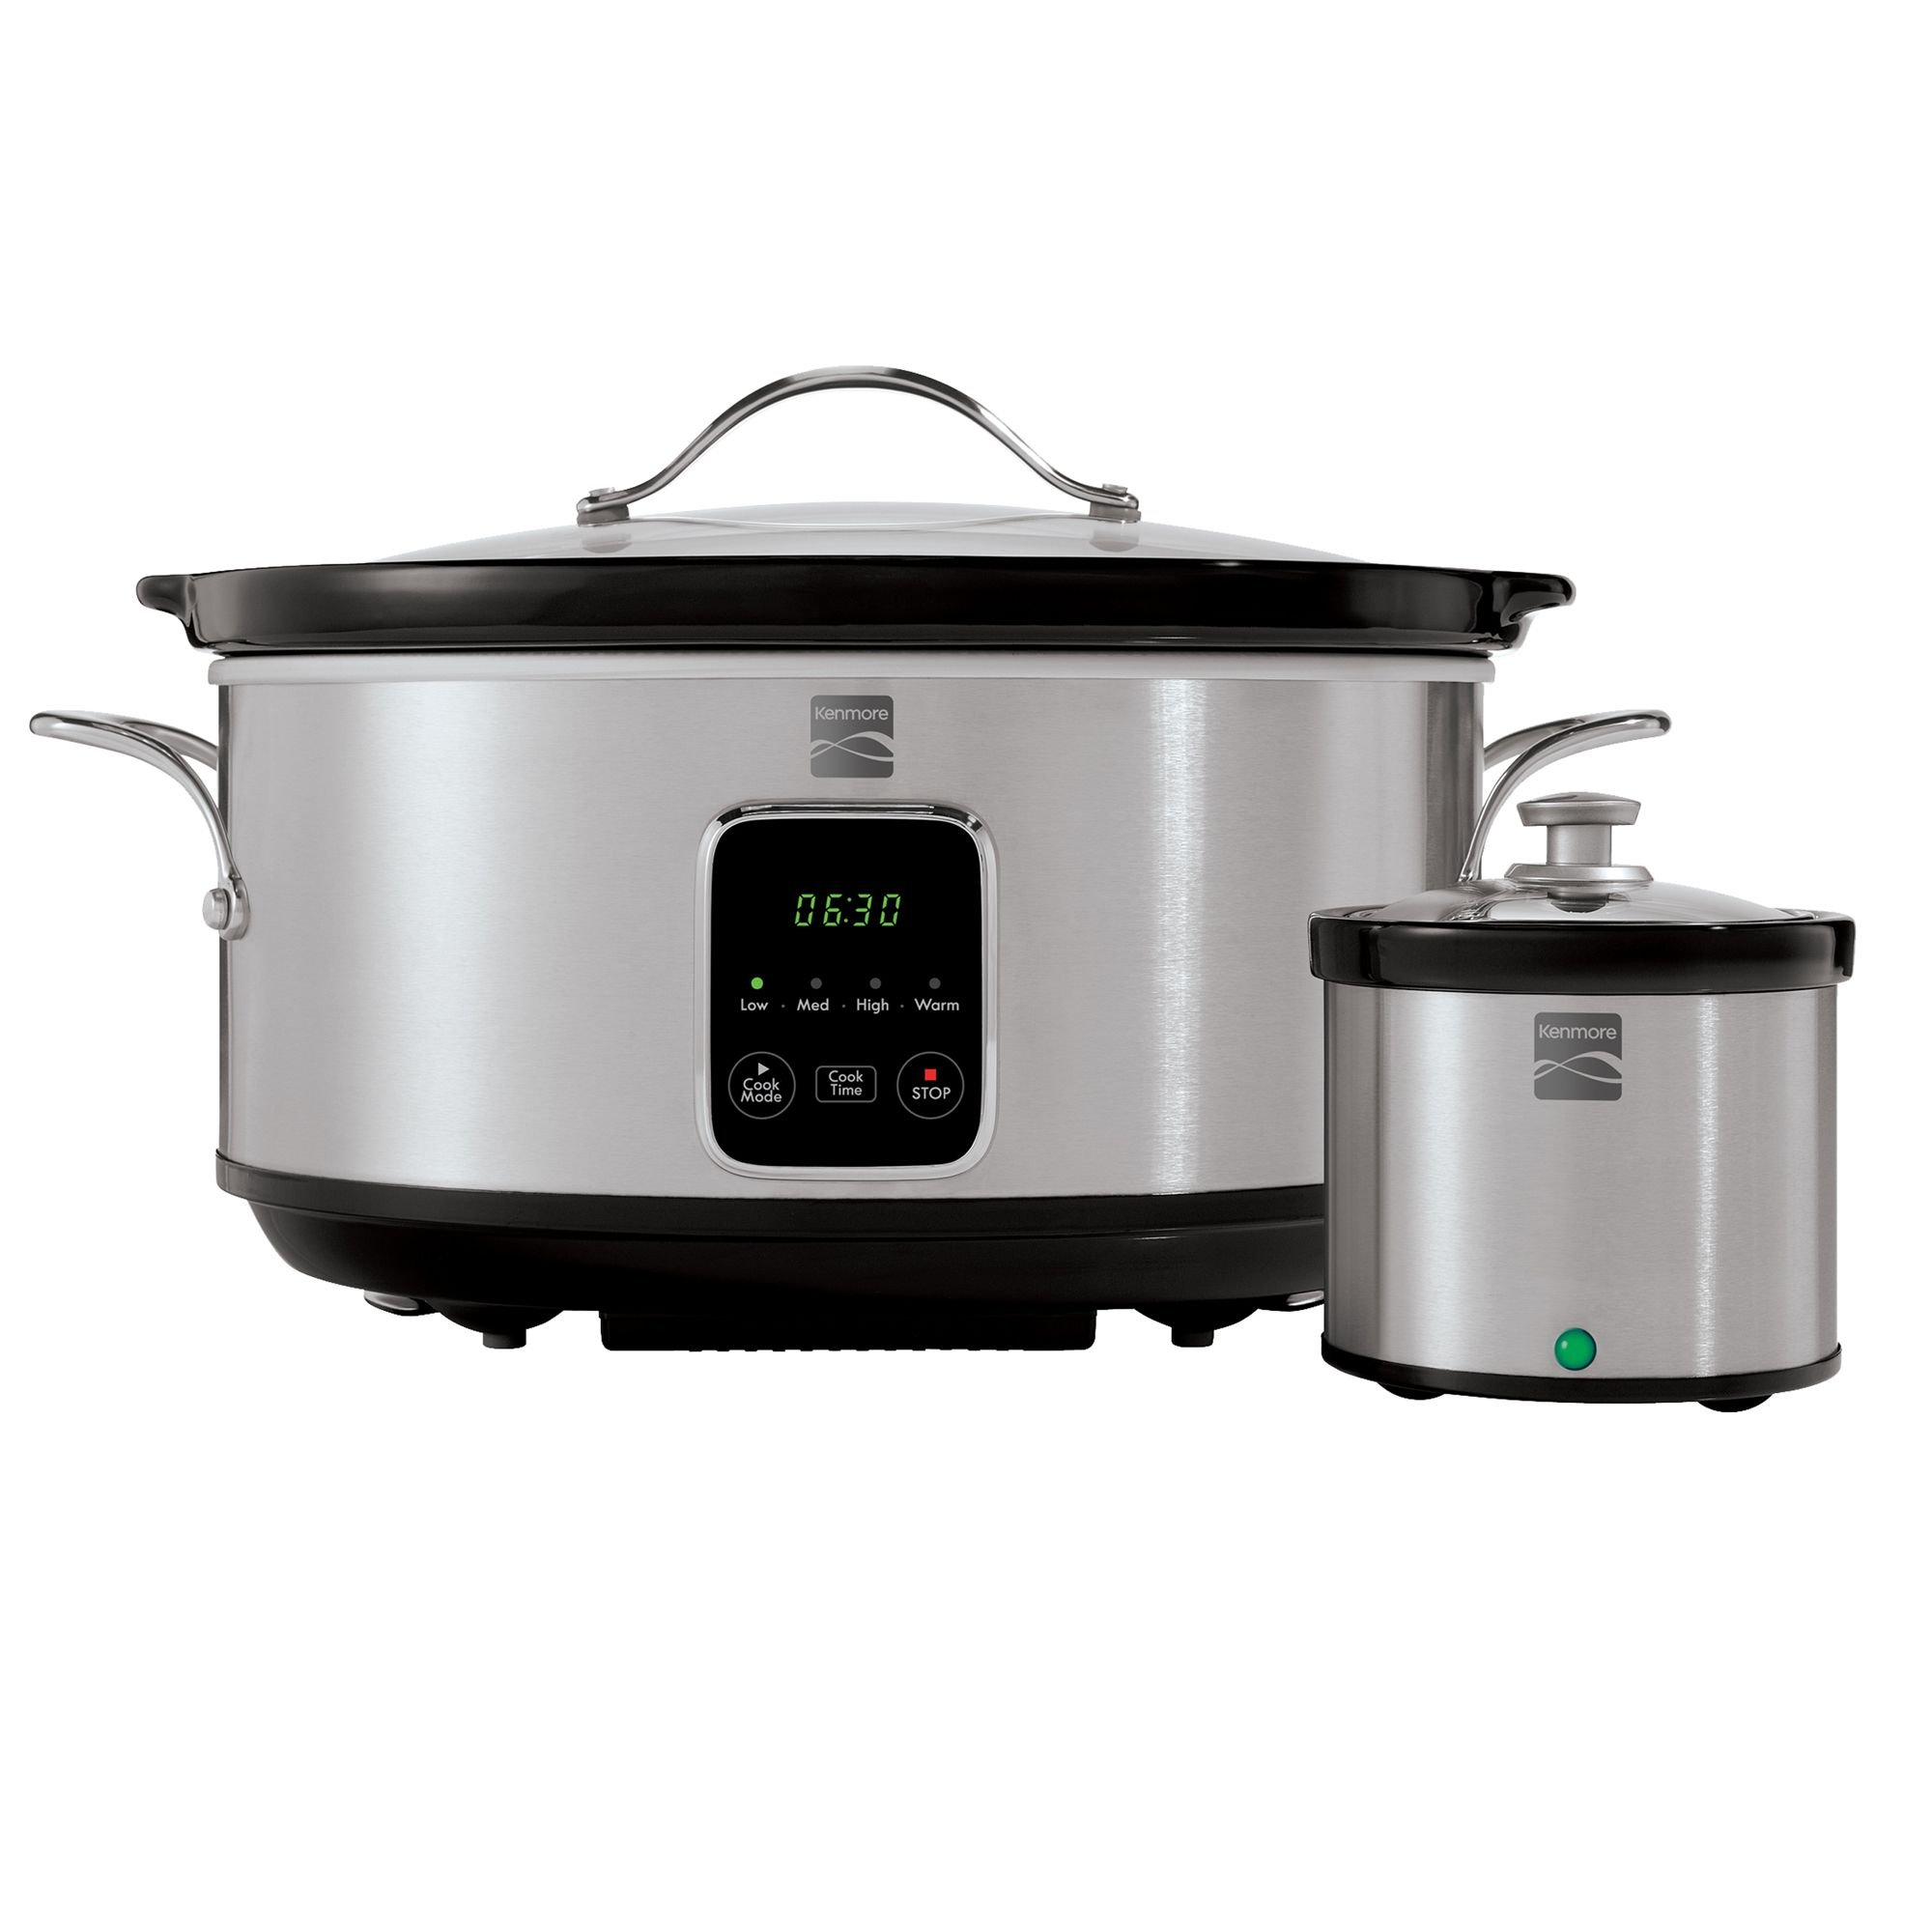 Kenmore 80010 7 Quart Slow Cooker with Dipper in Stainless Steel